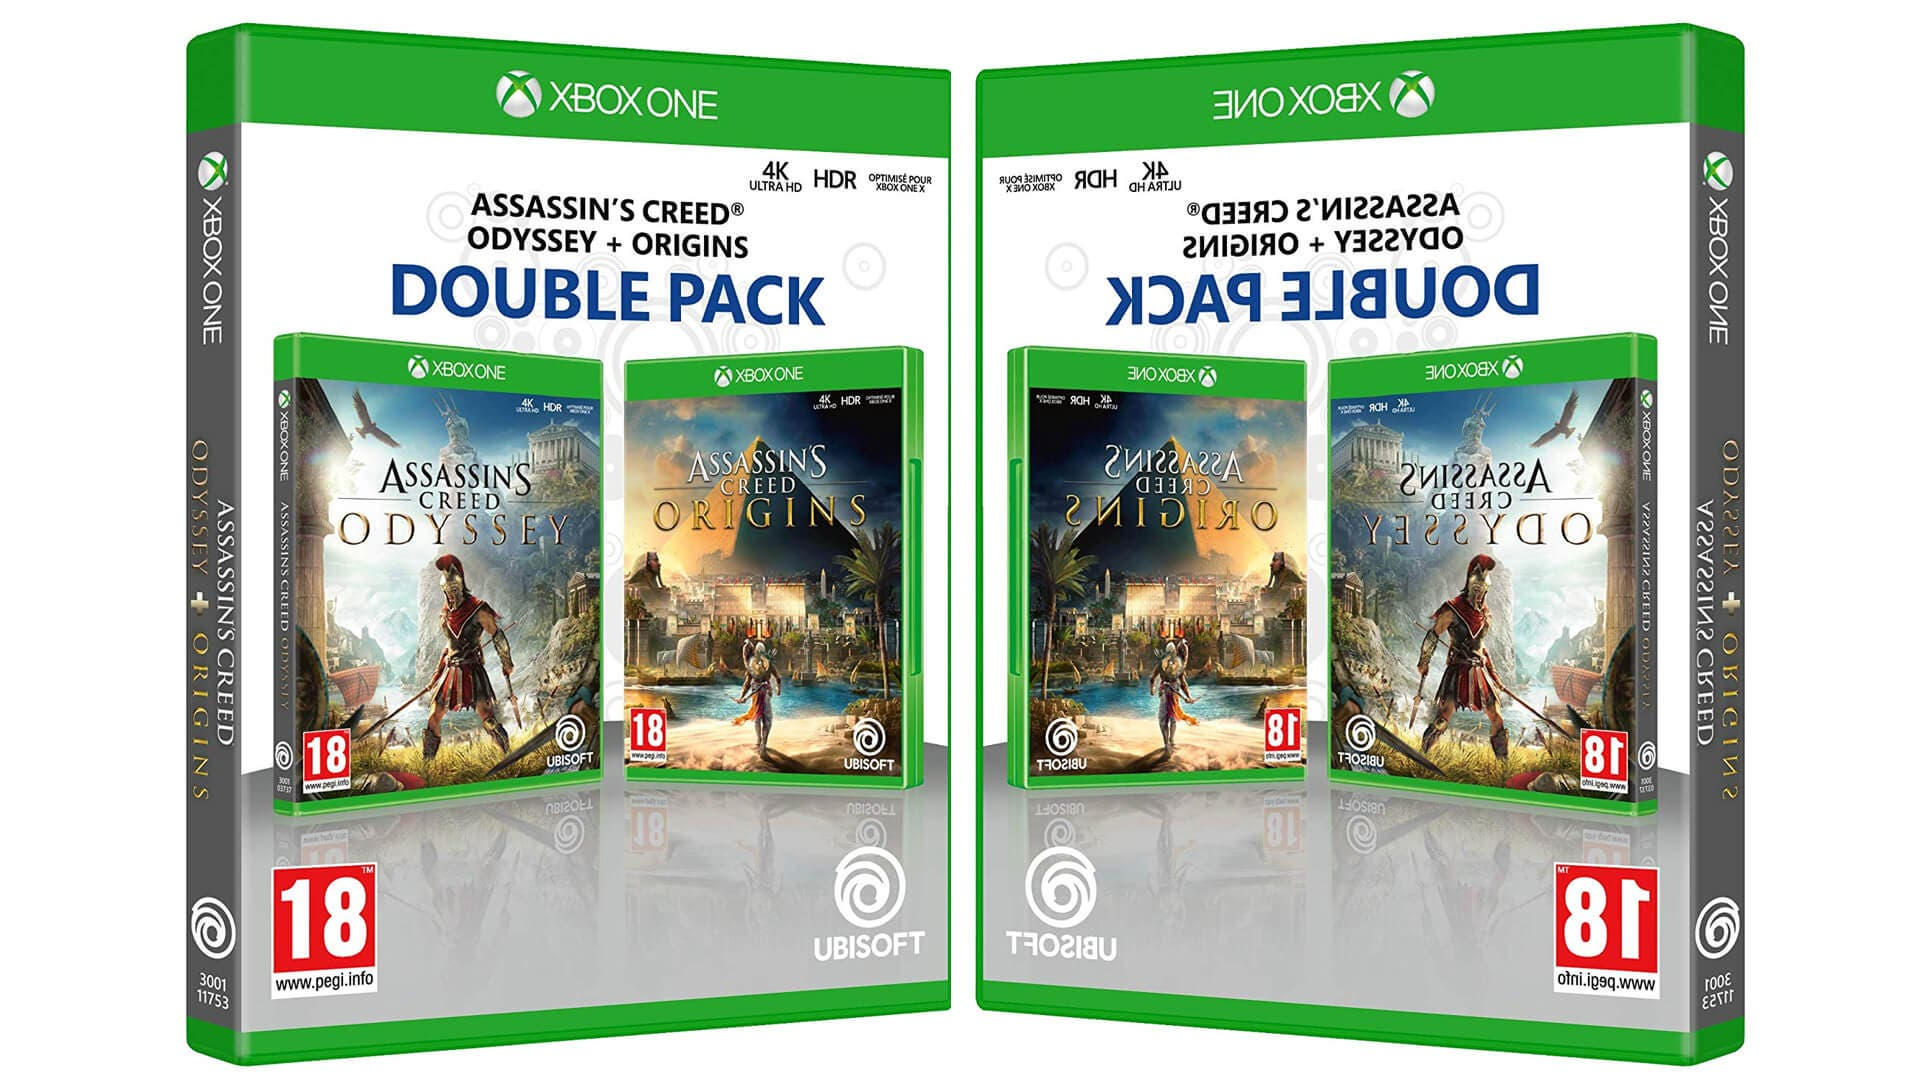 Gran oferta de Doble Pack Assassin's Creed Origins + Odyssey para Xbox One 5